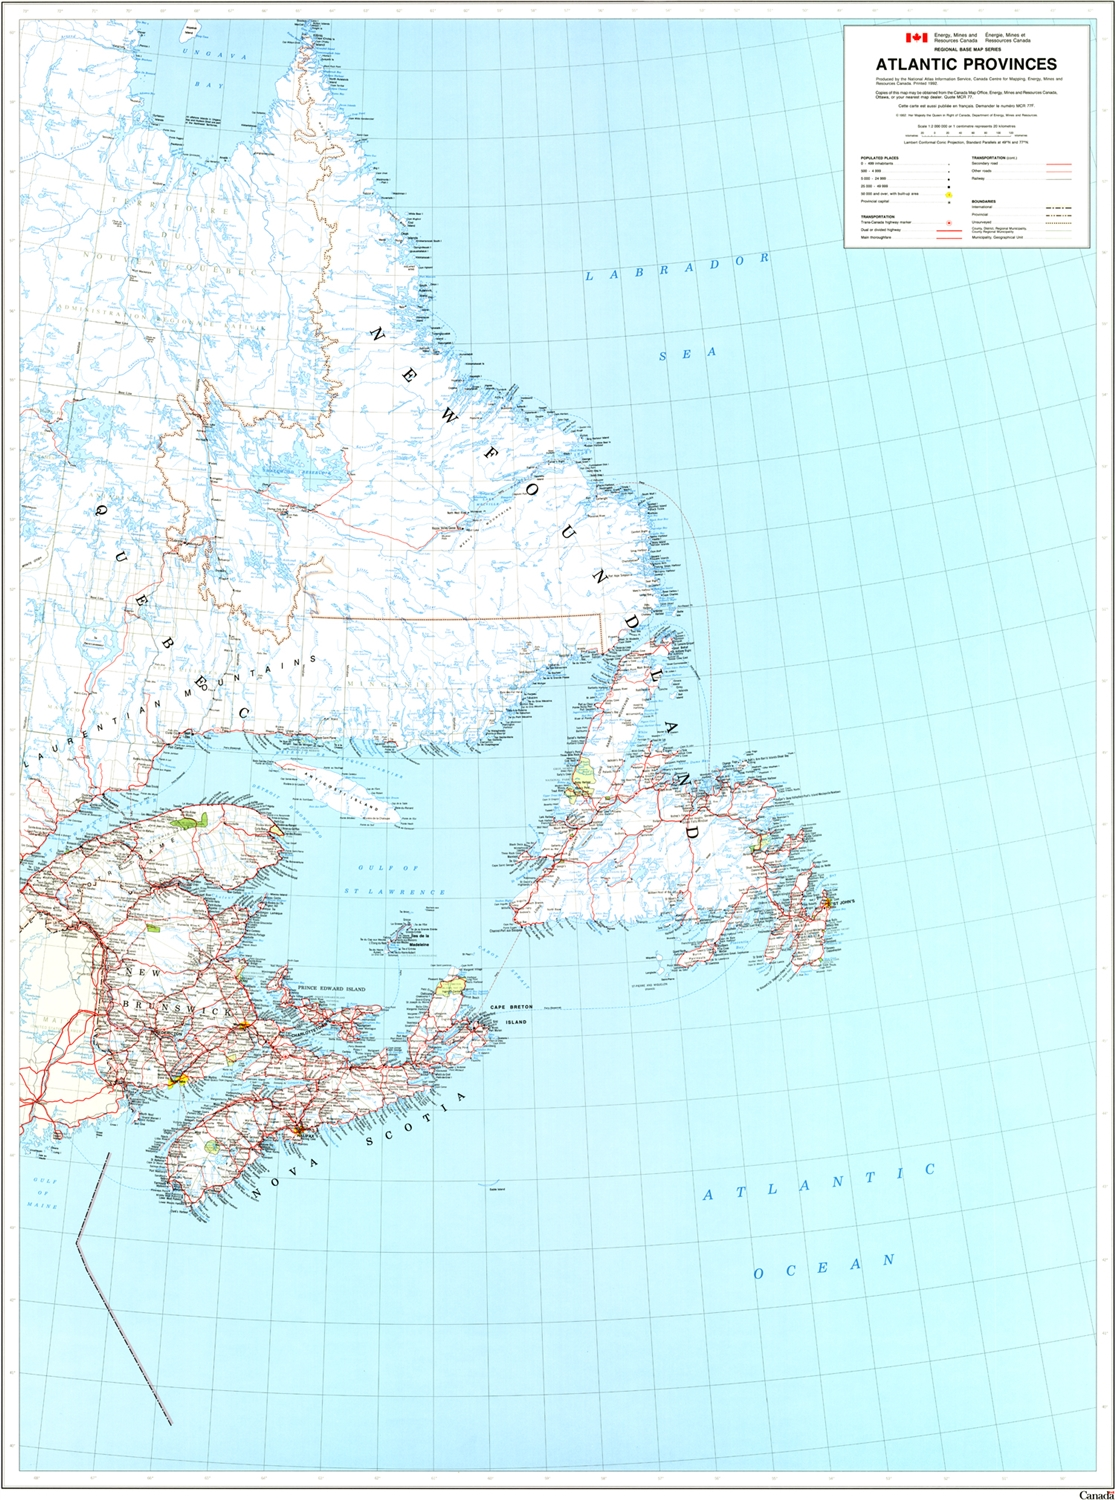 Show Map Of Canada With Its Provinces.Atlantic Provinces Base Map